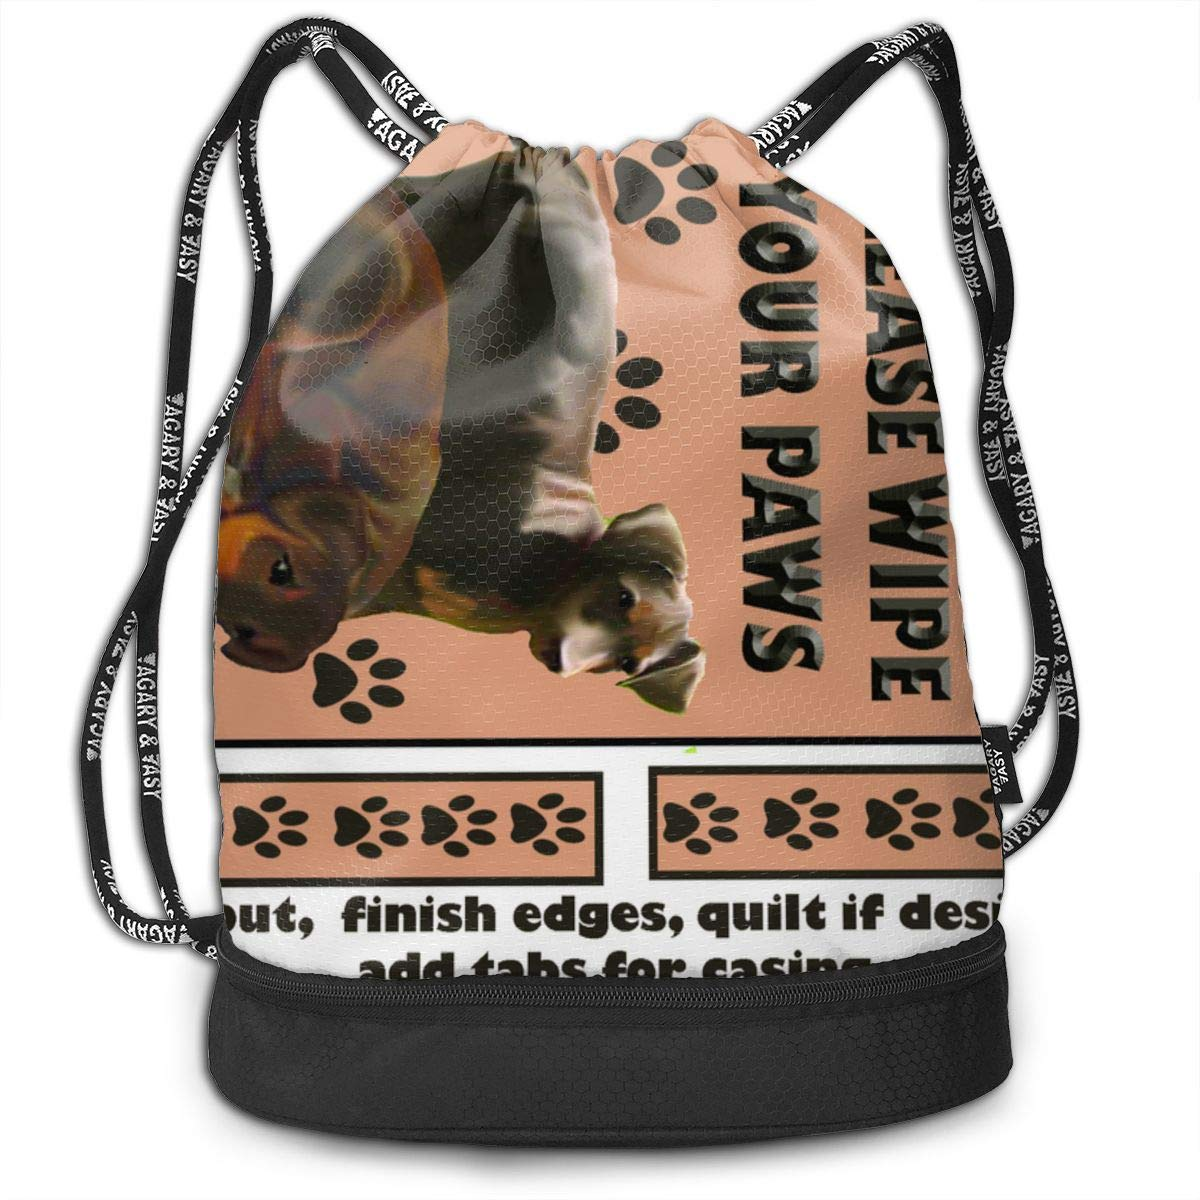 Doberman Welcome Wall Hanging Drawstring Backpack Sports Athletic Gym Cinch Sack String Storage Bags for Hiking Travel Beach